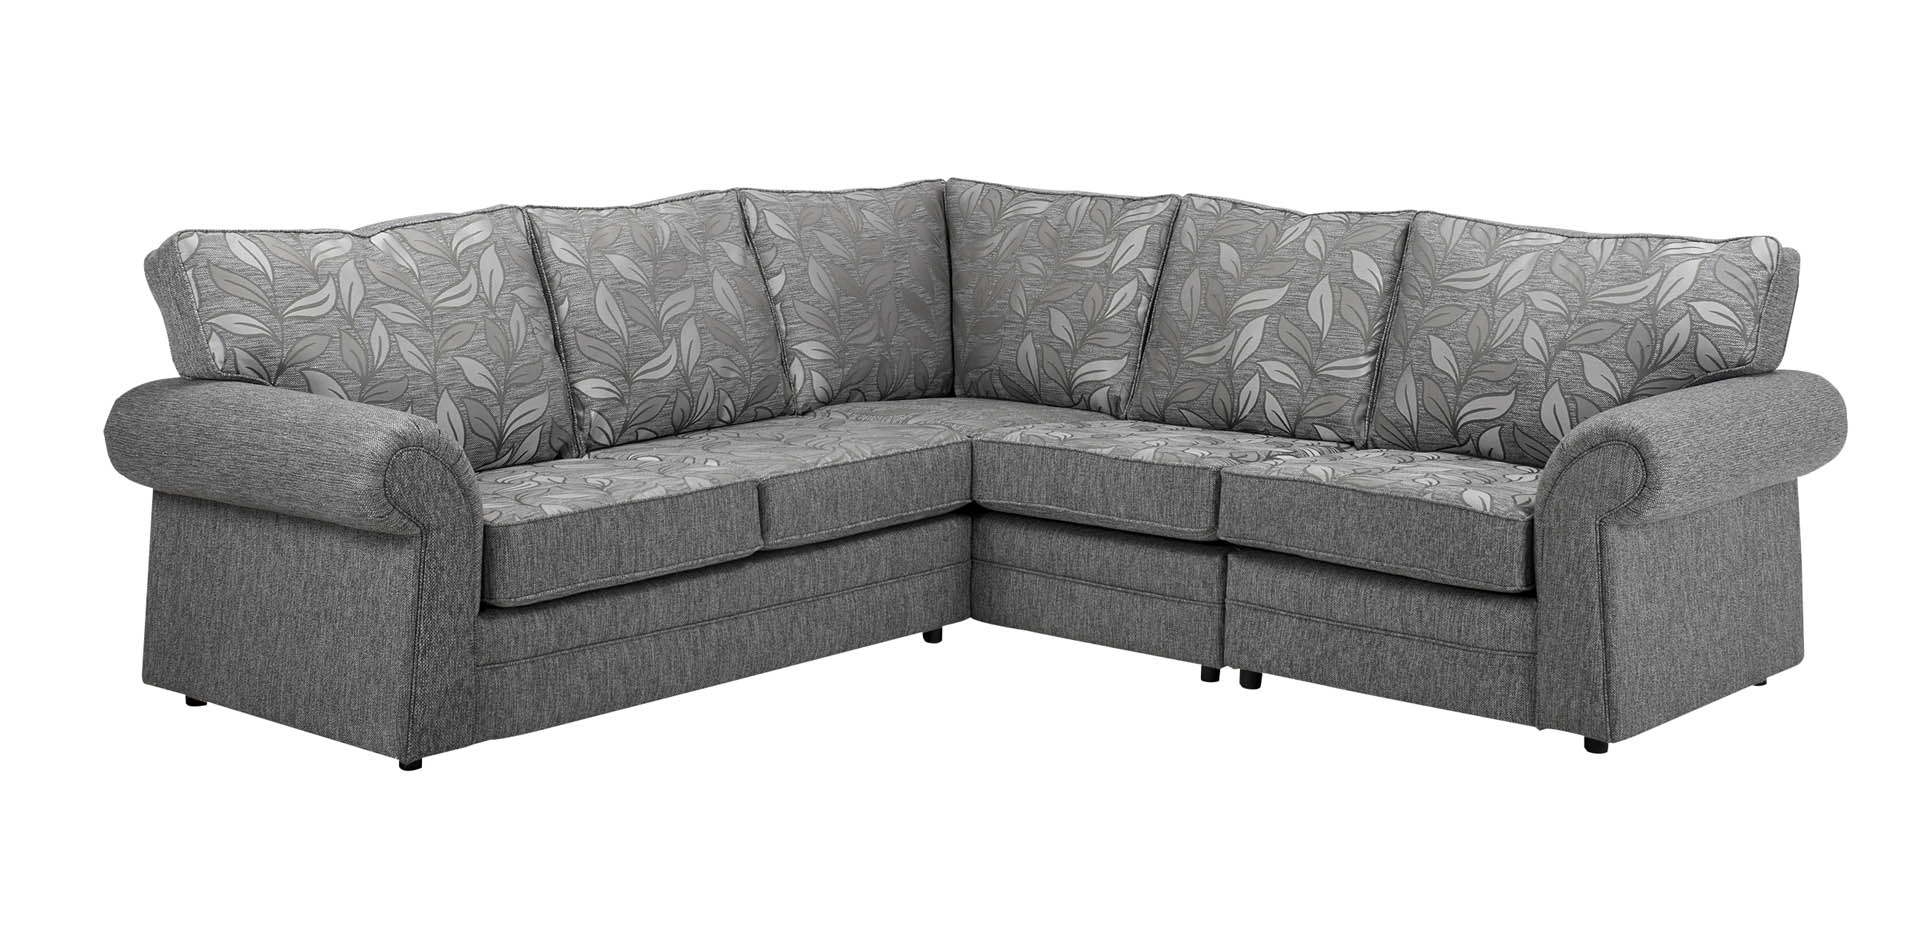 NEW Emma Corner Suite - also available as a 3 seater, 2 seater and chair NEW